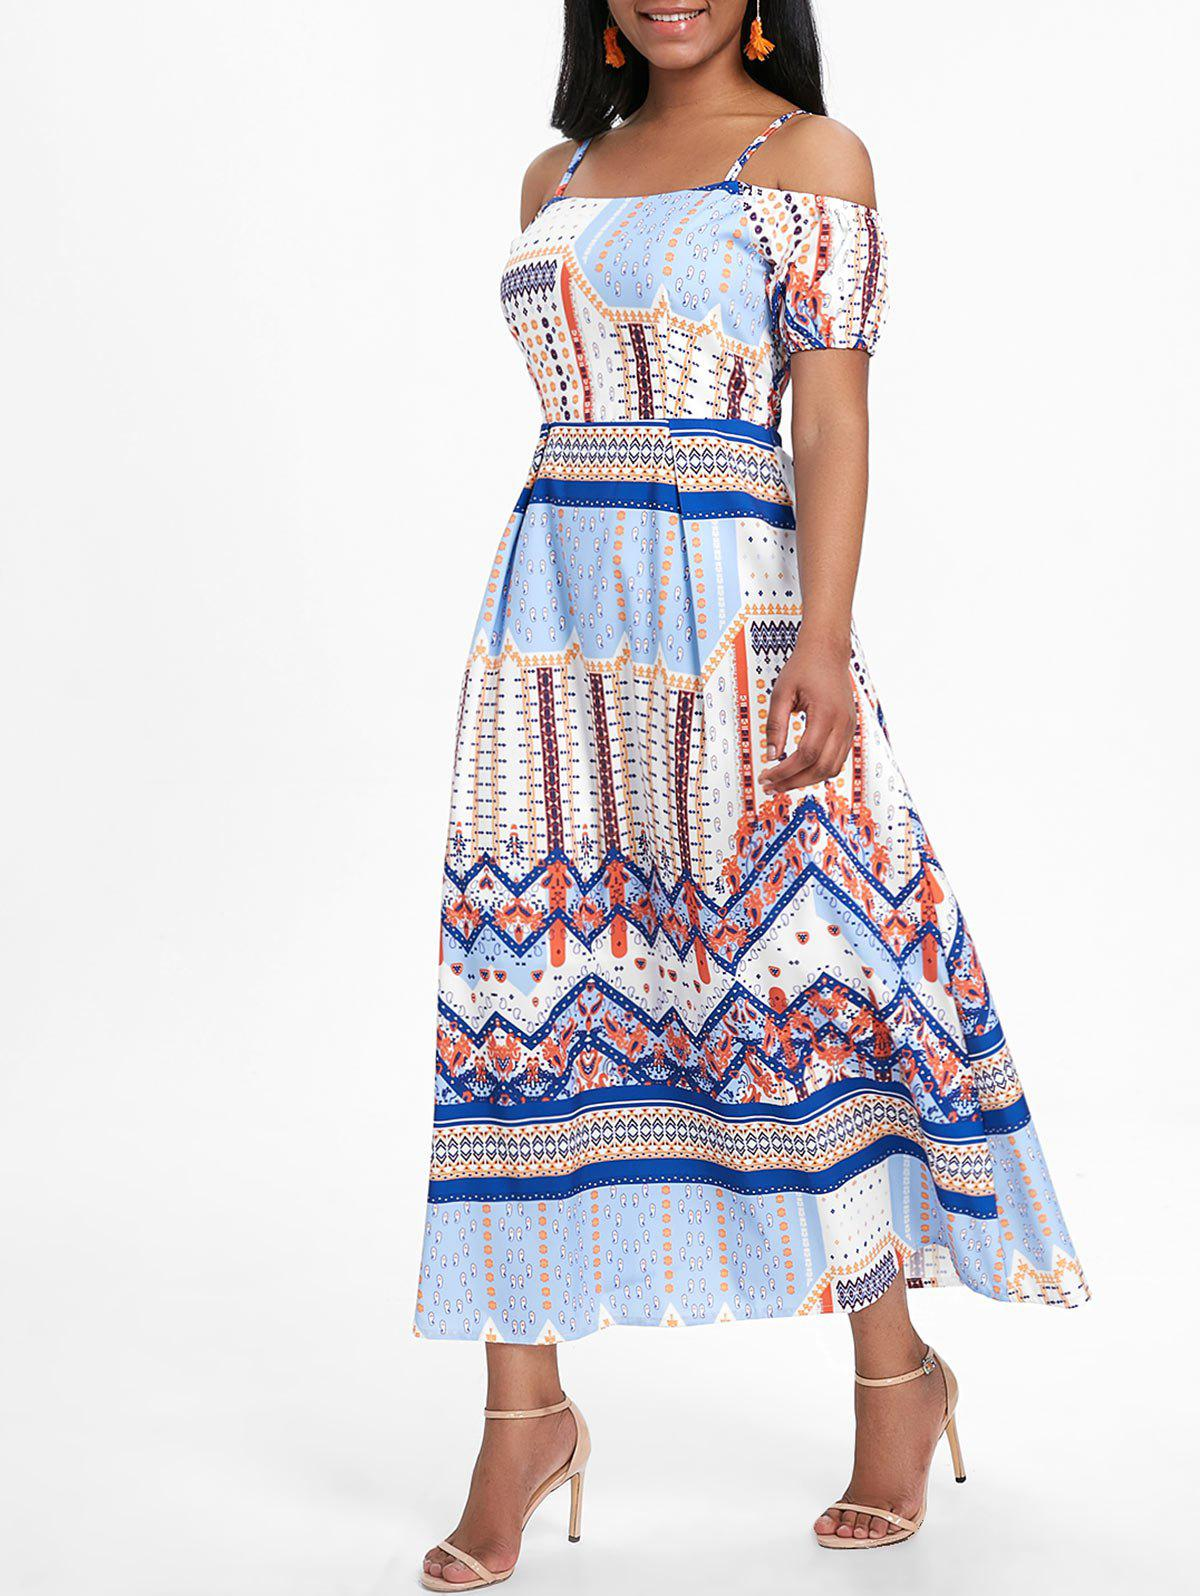 Bohemian Printed Midi Flare Dress - multicolor S